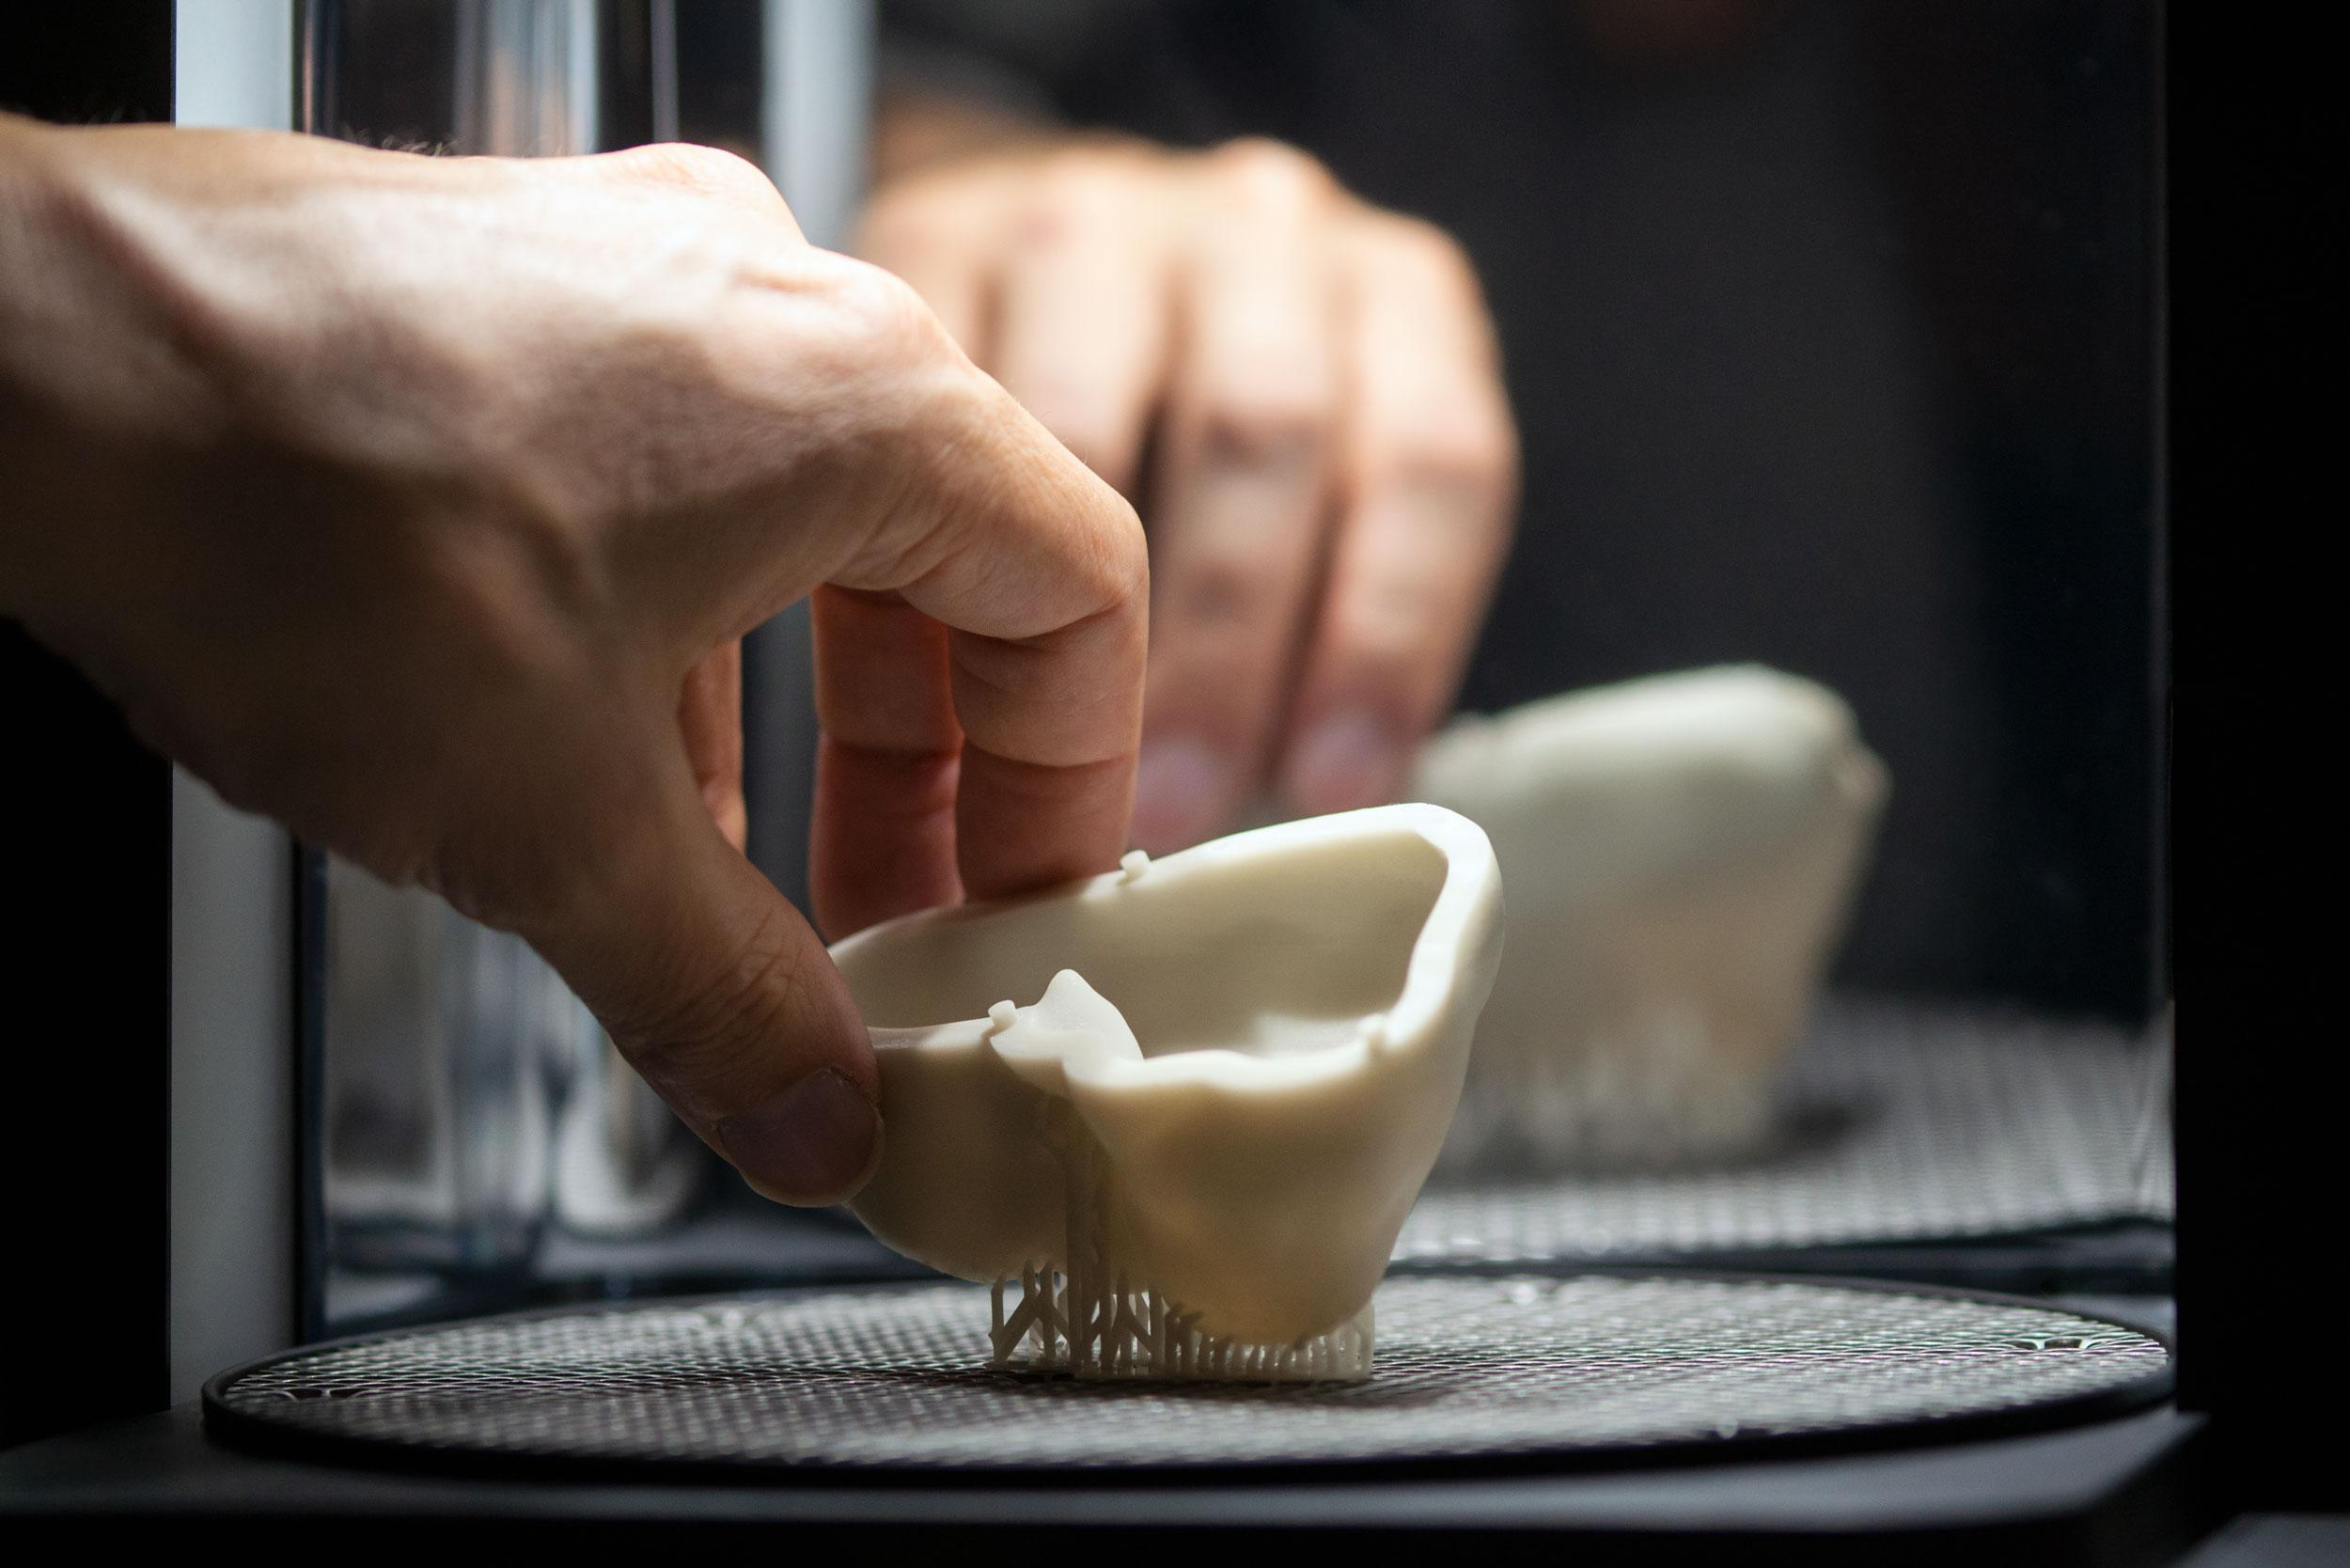 SOMA-3D: Soft multi-material 3D printing for advanced surgical training